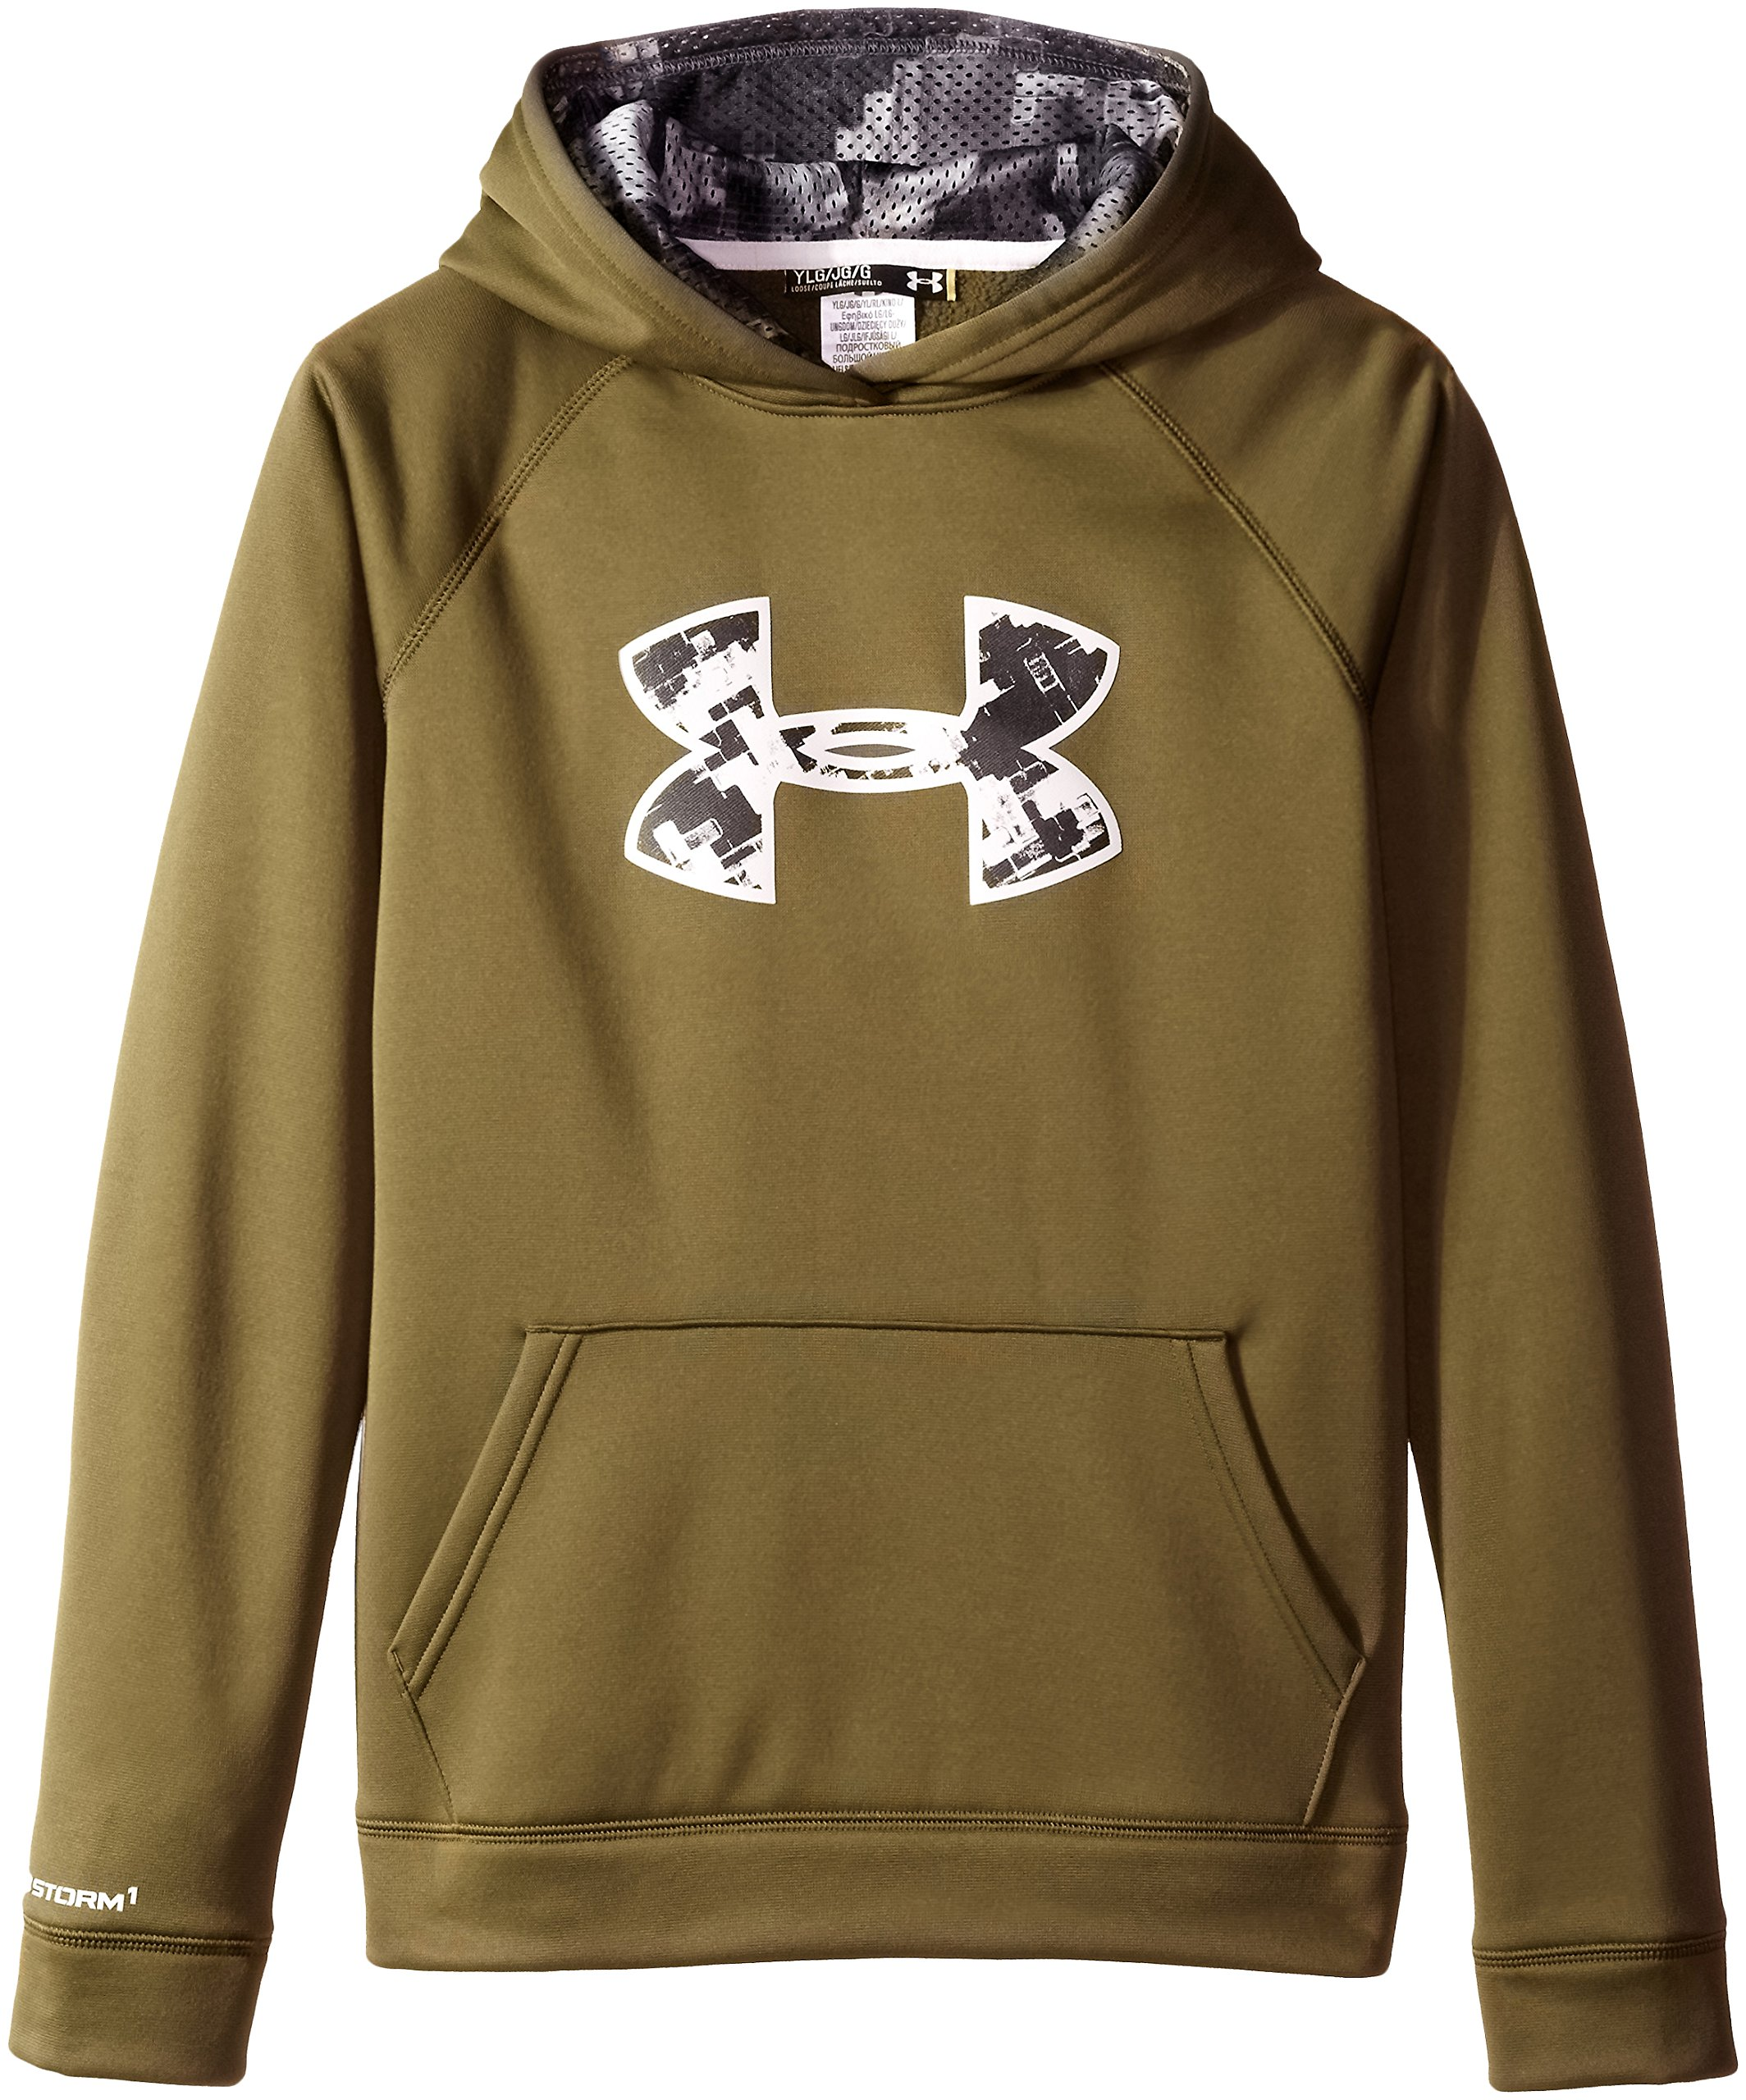 Under Armour Youth Boys' Fleece Storm Big Logo Hoody, Greenhead /Glacier Gray, Youth X-Small by Under Armour